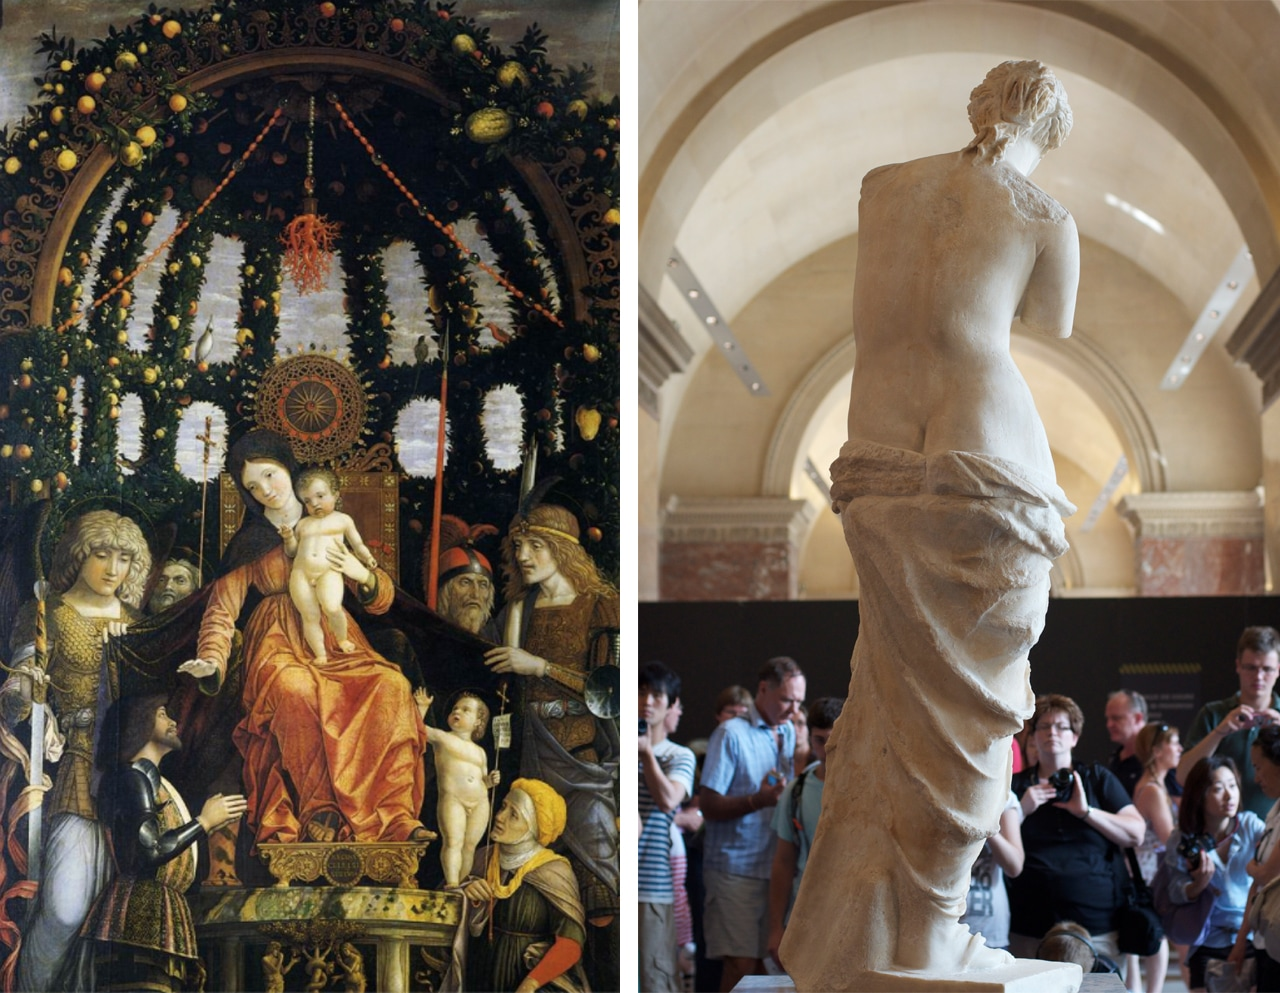 Left: The Virgin of Victory, 1496. Andrea Mantegna. Right: The Venus de Milo, attributed to Alexandros of Antioch. Images: via Wikipedia Commons